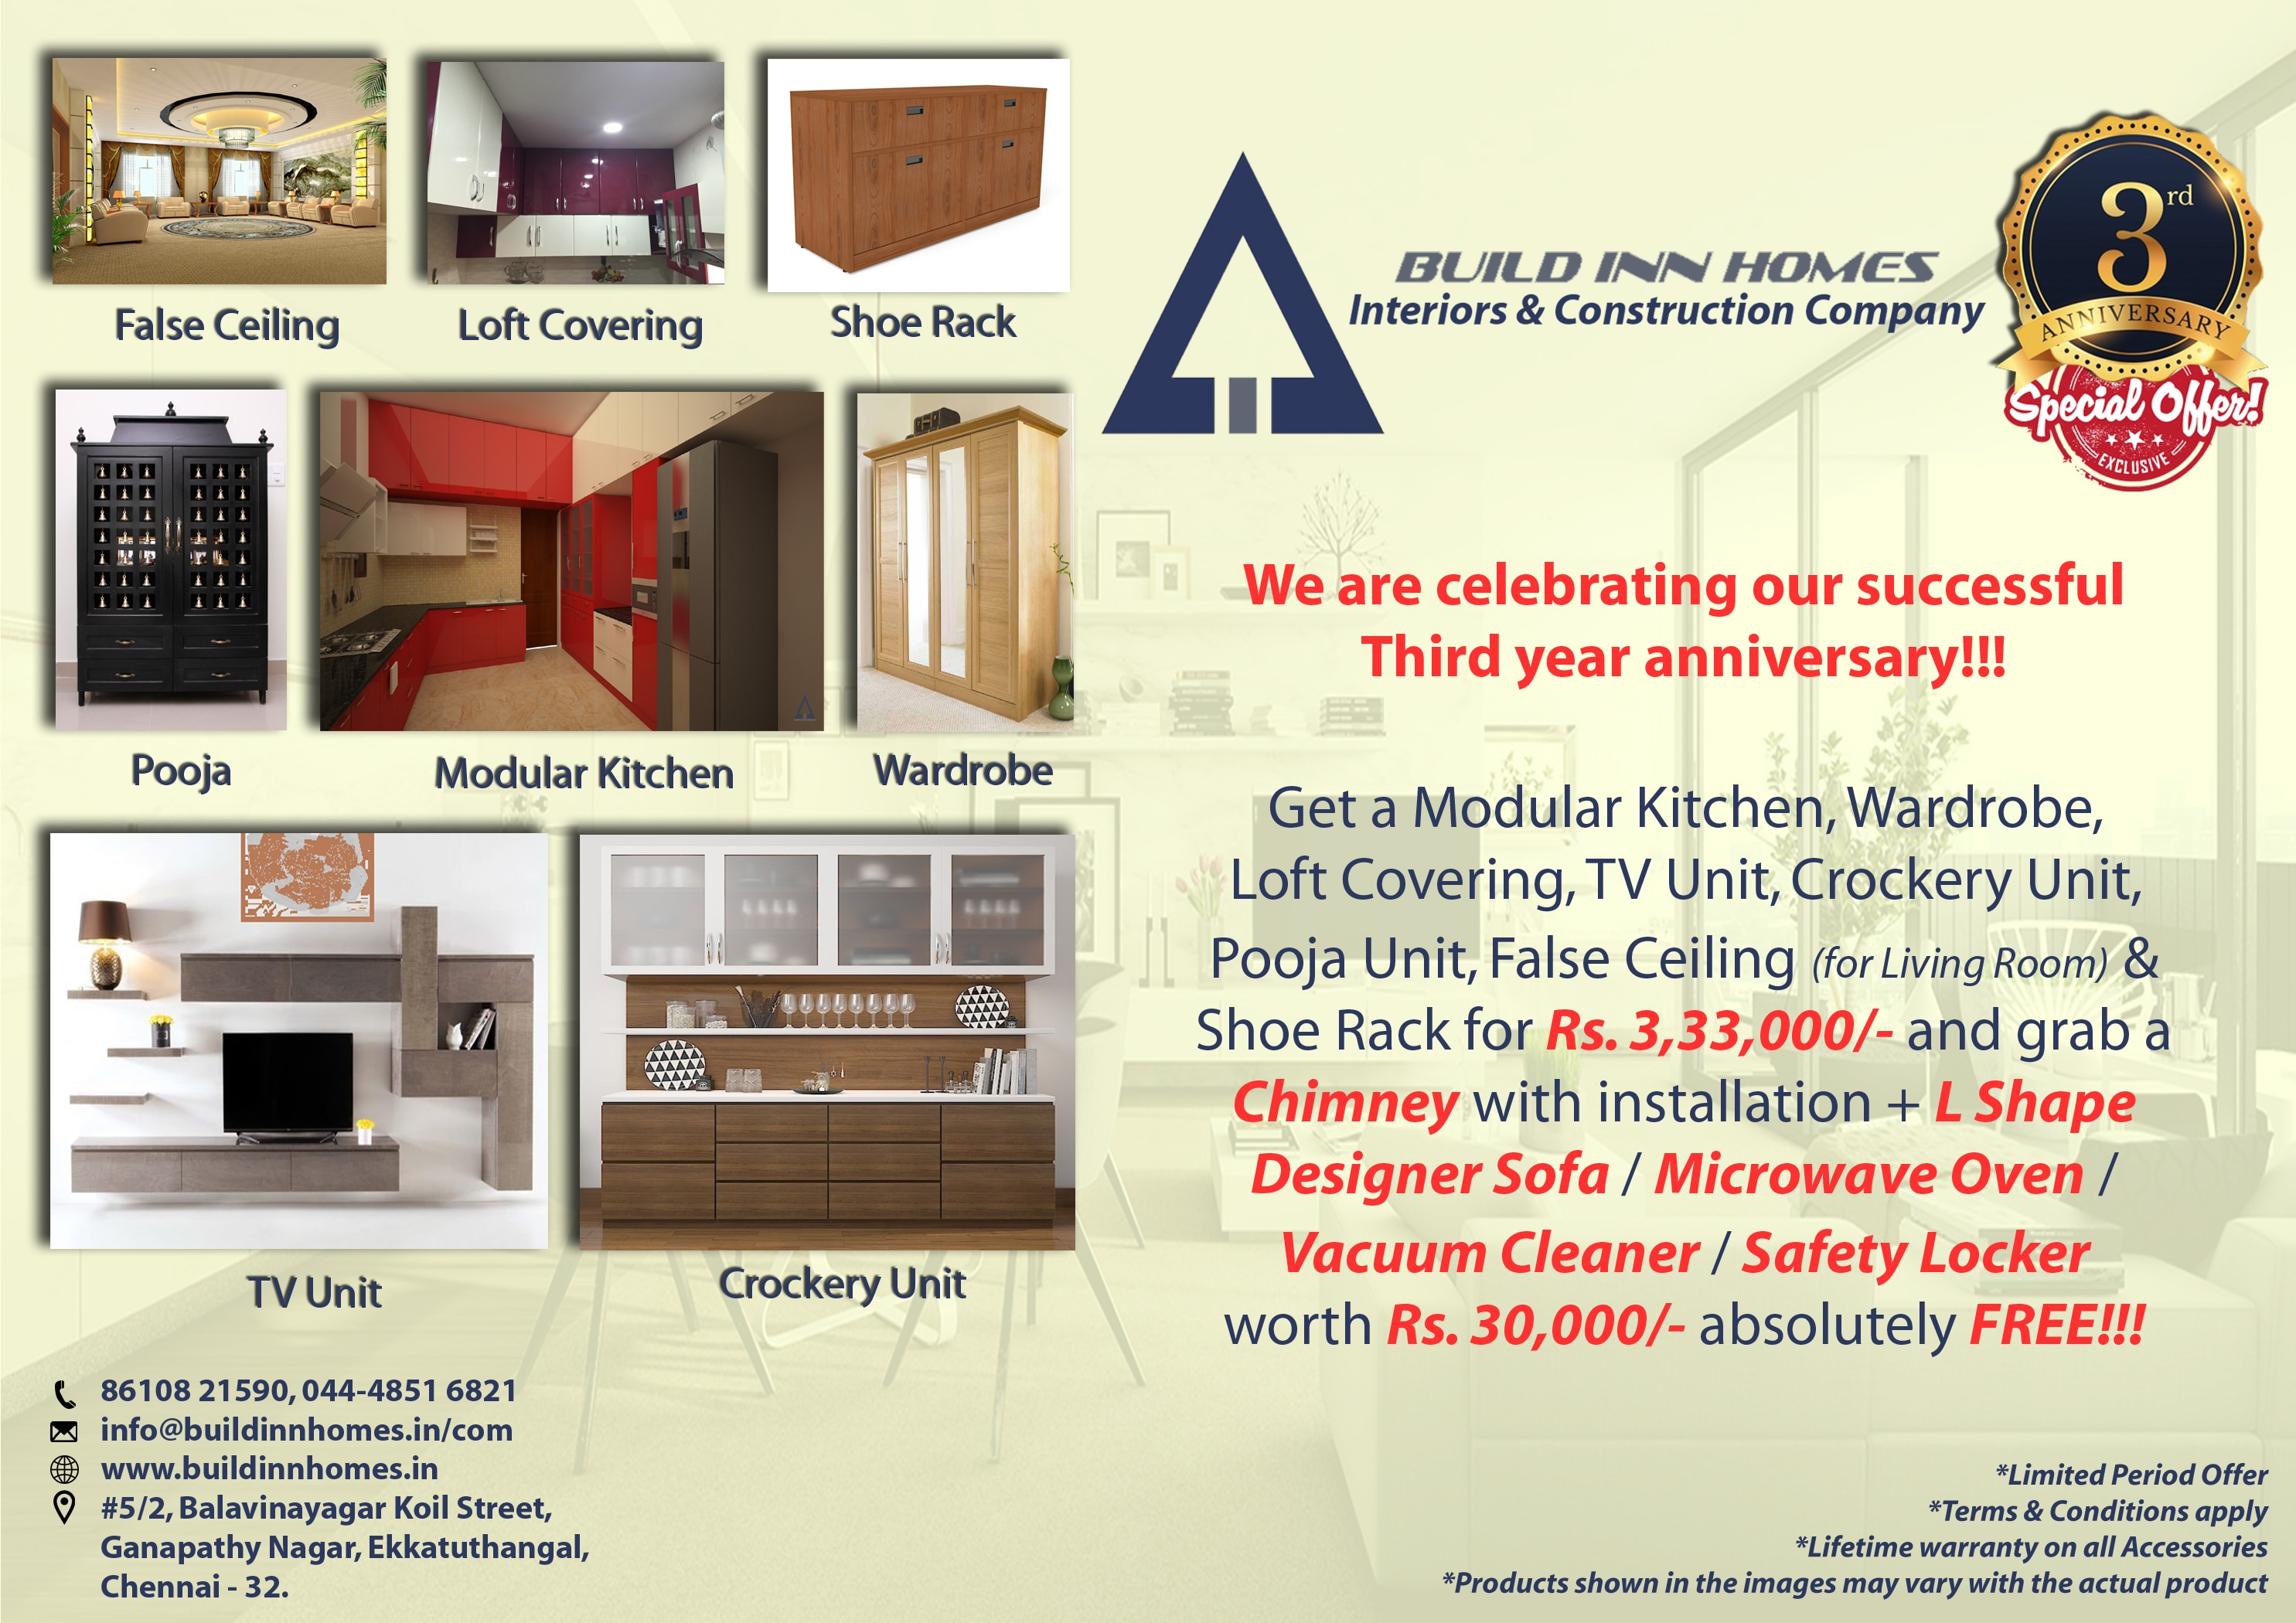 BUILD INN HOMES Interior Designing Company Now Provides